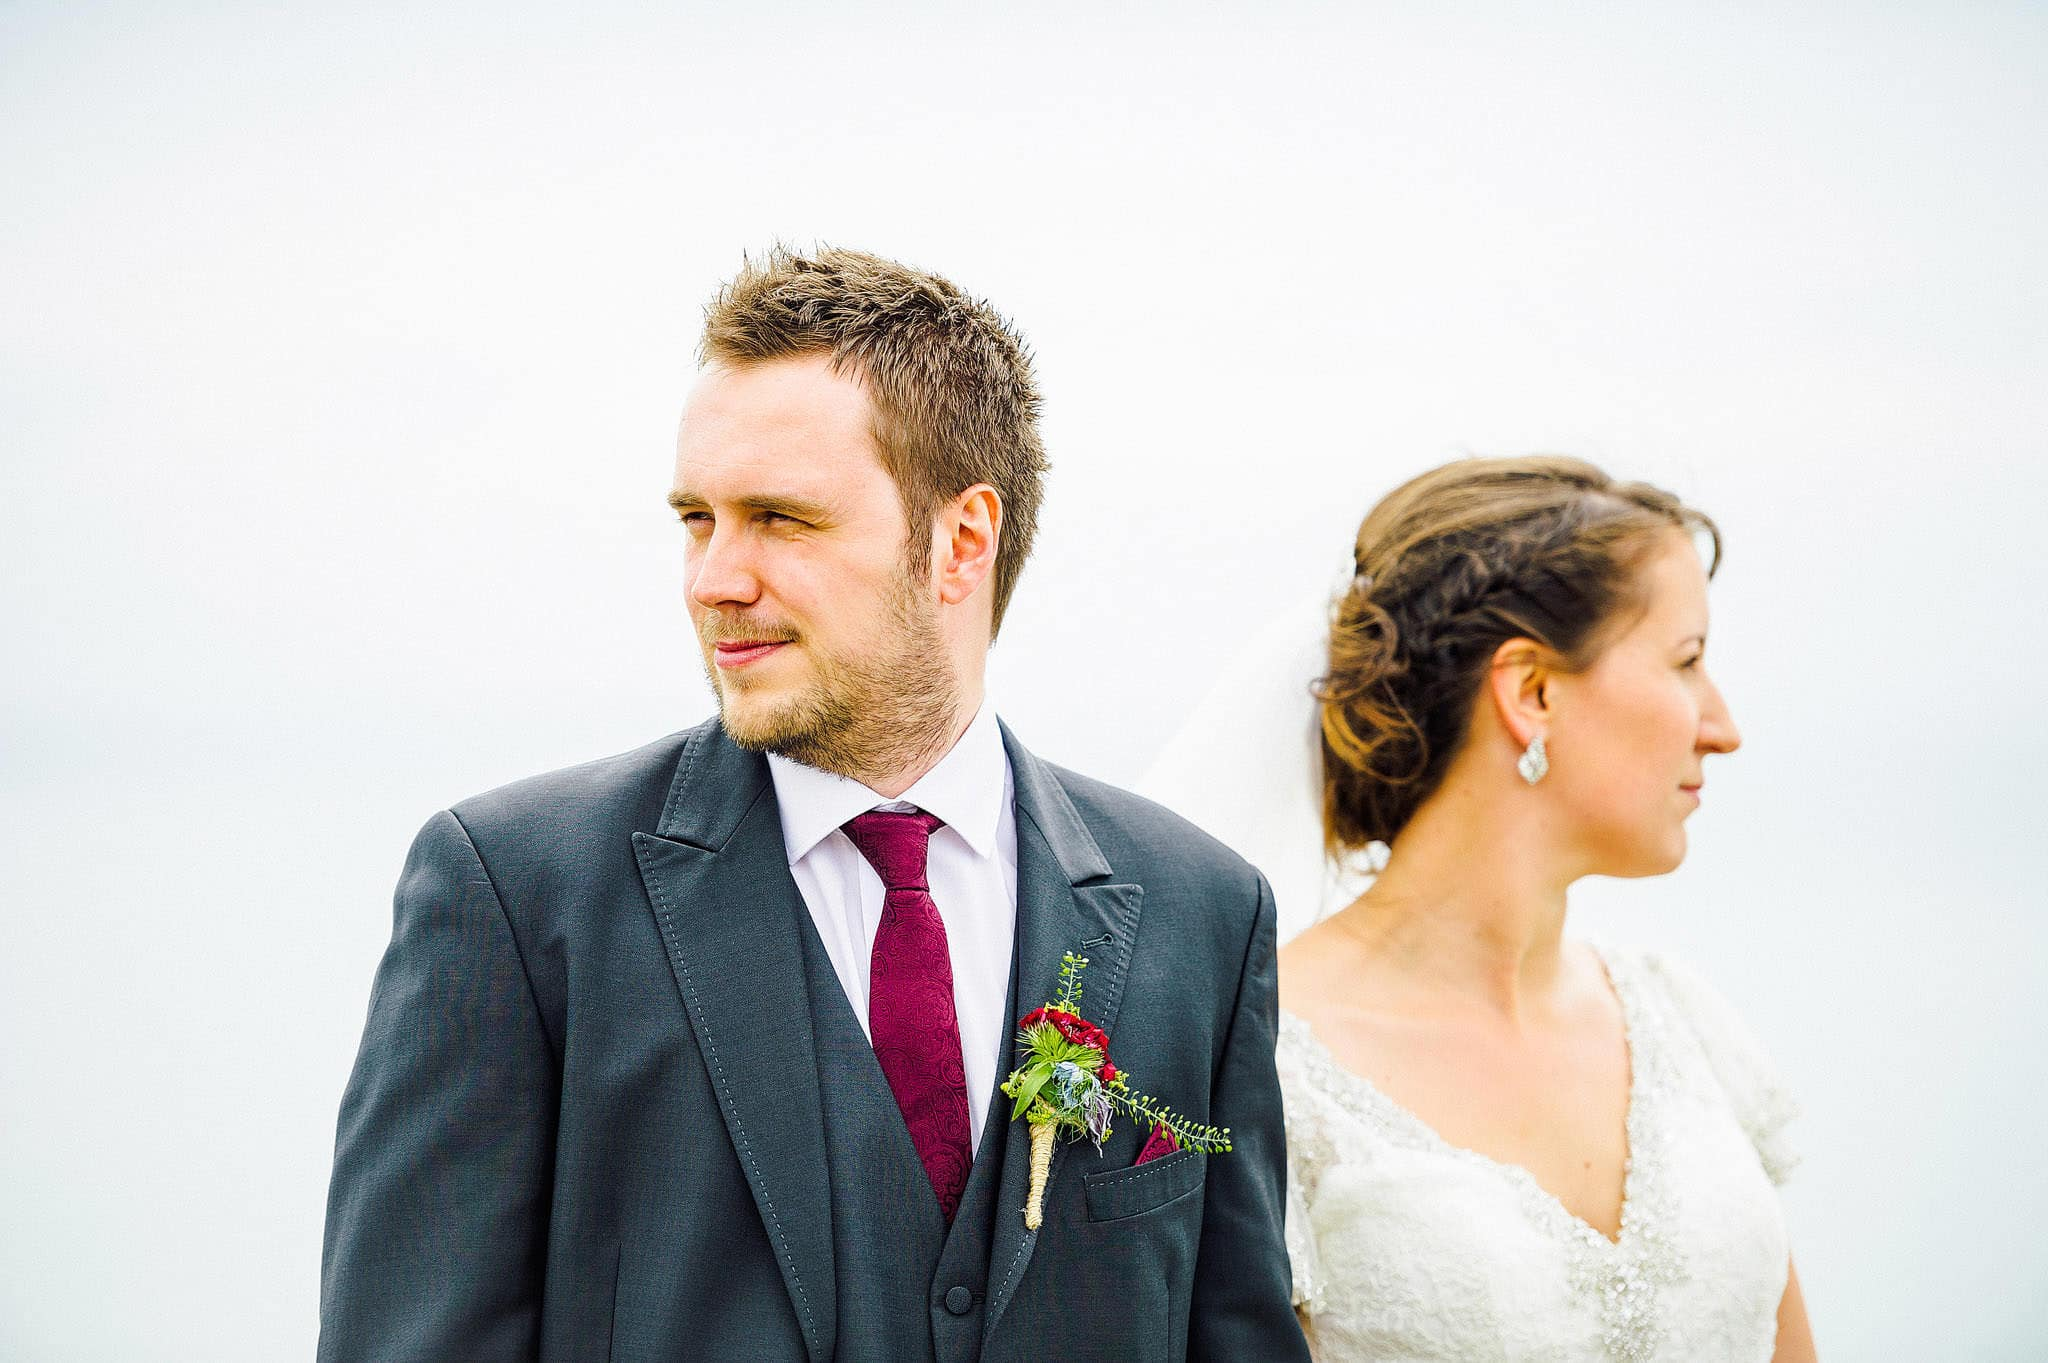 wedding photography midlands 45 - Midlands wedding photography - 2015 Review